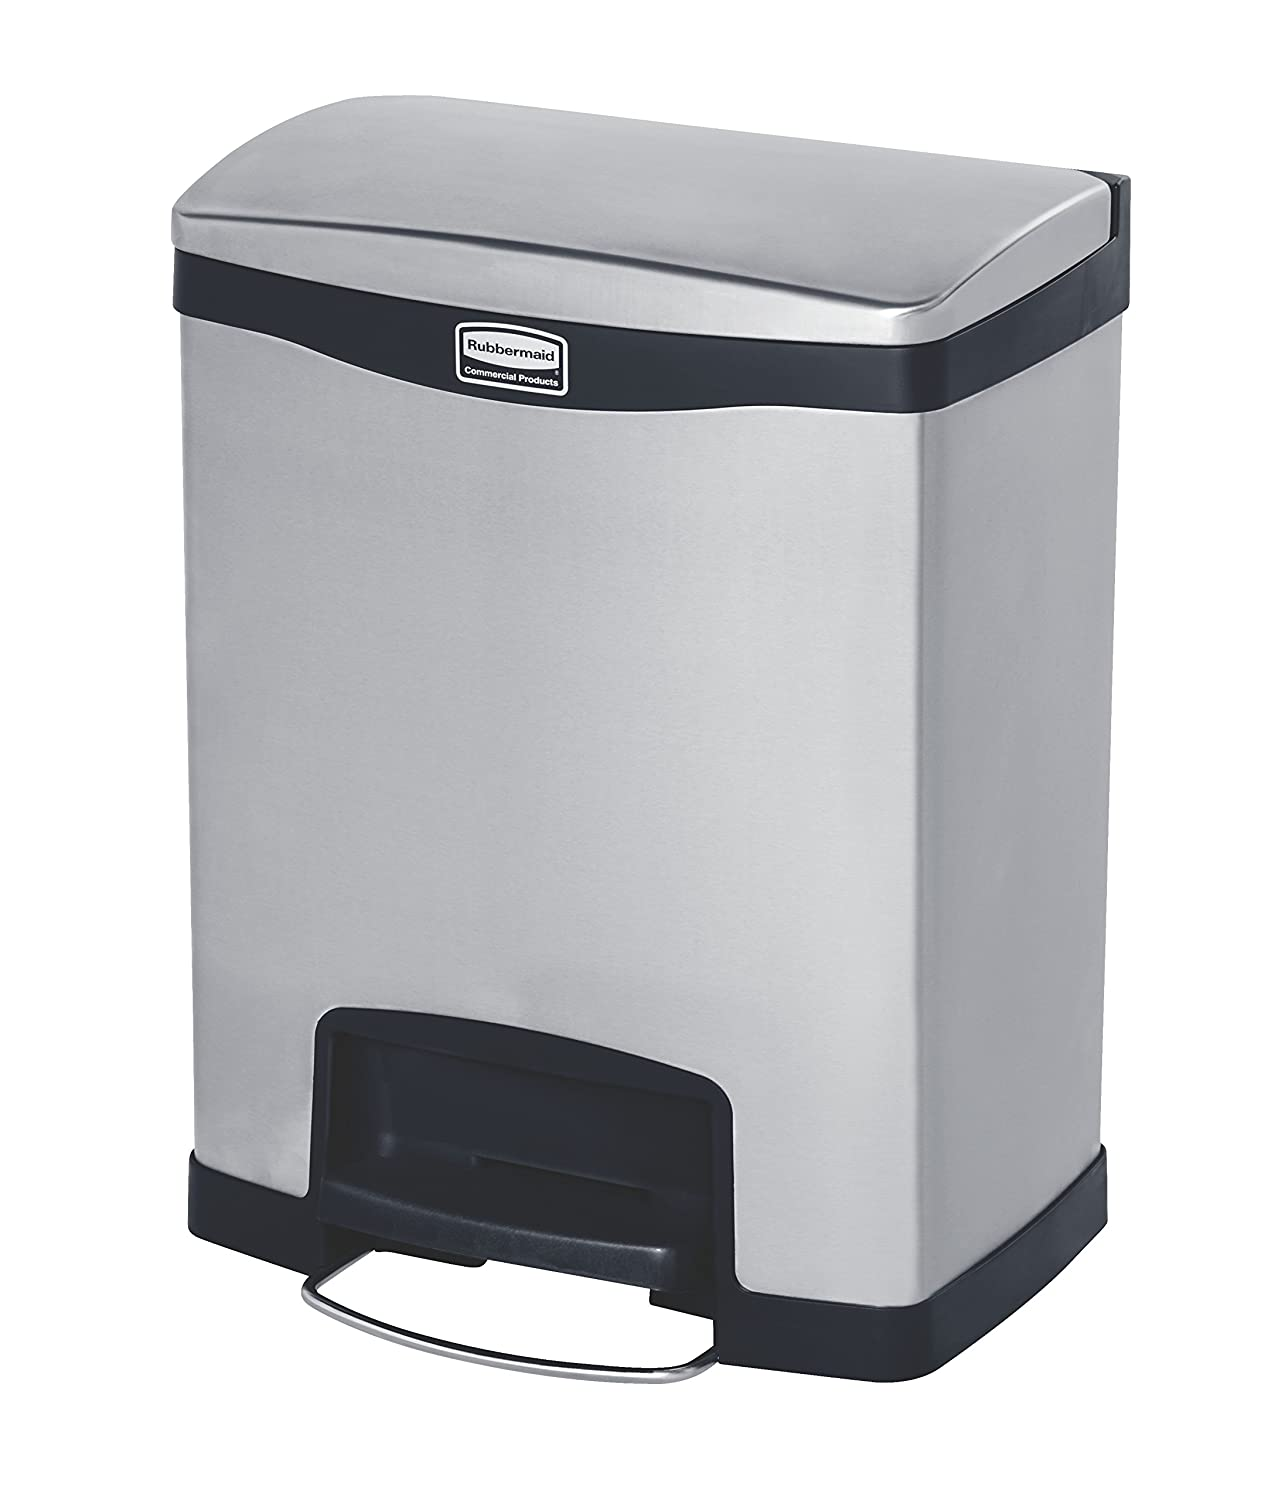 Rubbermaid Commercial Slim Jim Stainless Steel Front Step-On Wastebasket, 8-Gallon, Black (1901985)